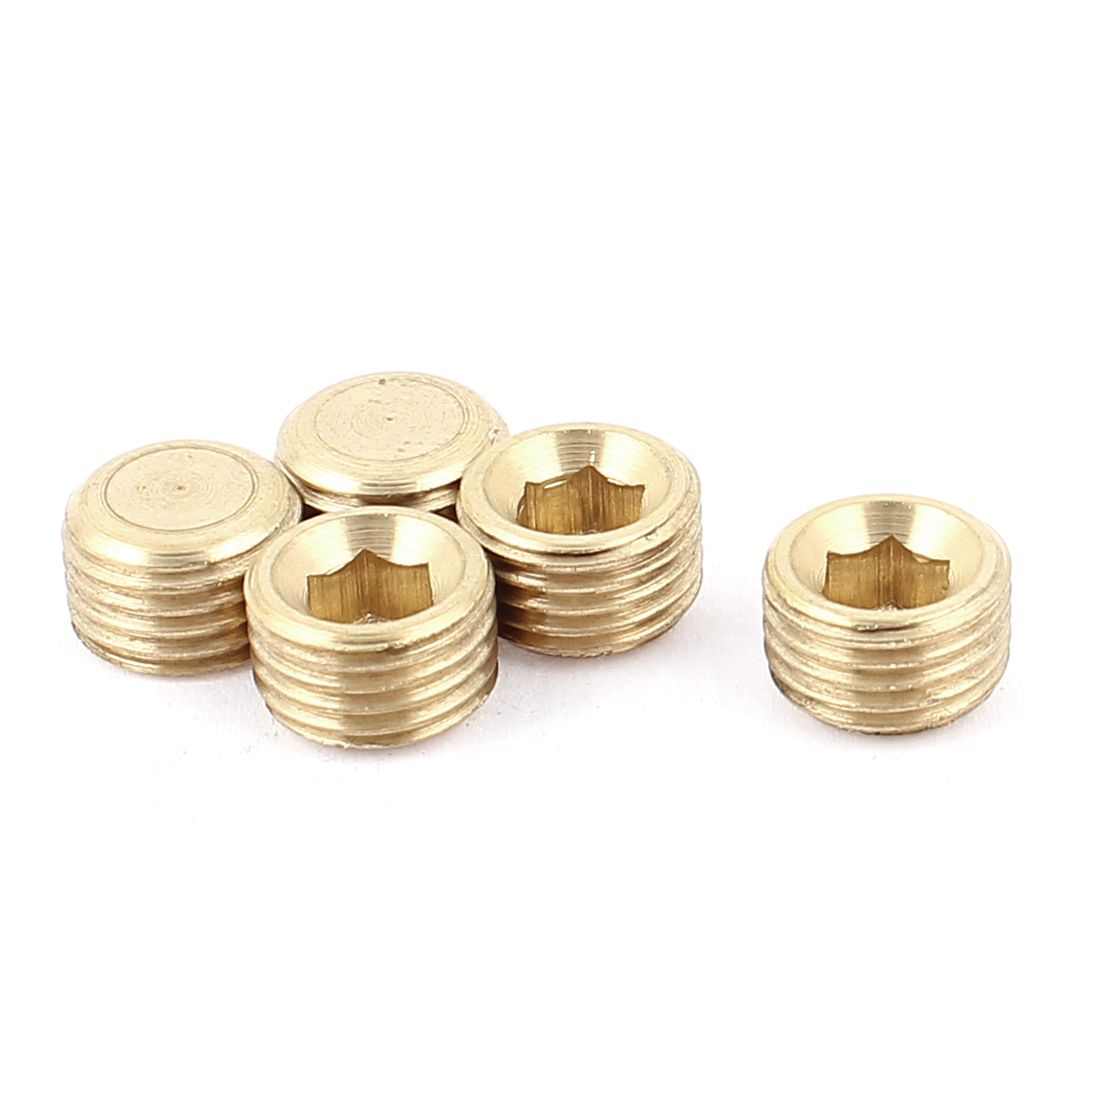 1/4BSP Male Thread Copper Hex Socket Head Pipe Plug Connector Coupling Adapter 5pcs